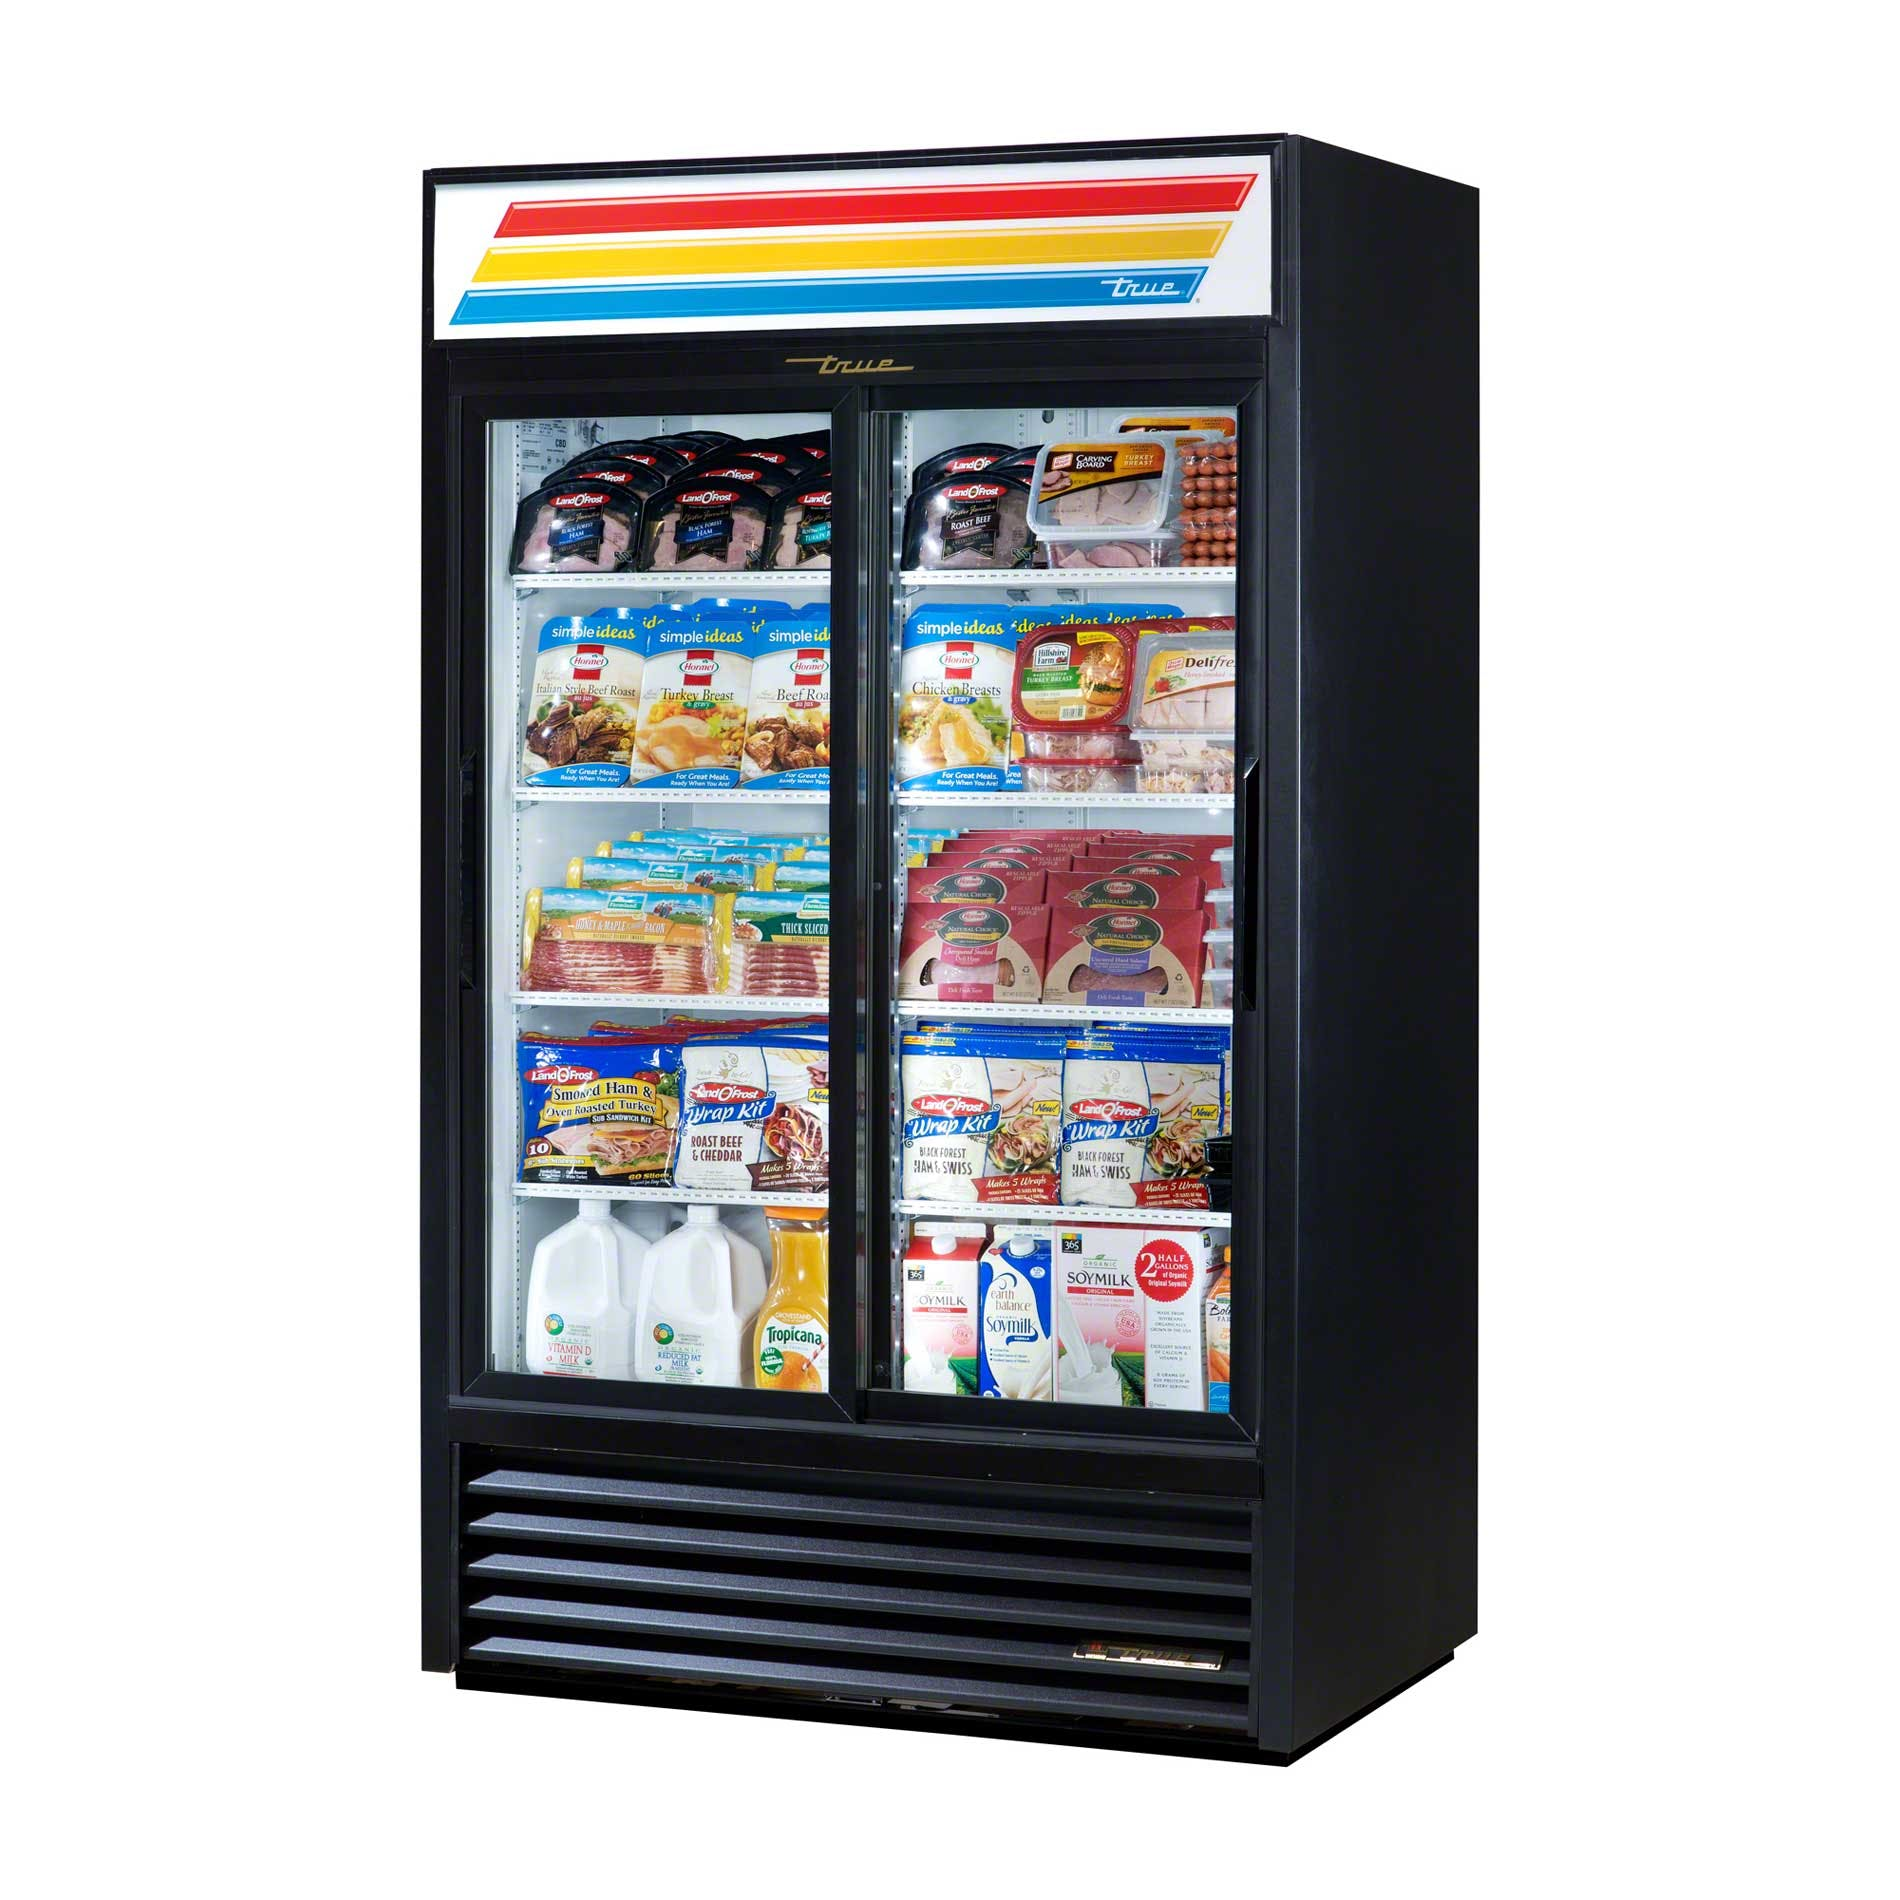 "True - GDM-41-LD 47"" Slide Glass Door Merchandiser Refrigerator LED Commercial refrigerator sold by Food Service Warehouse"